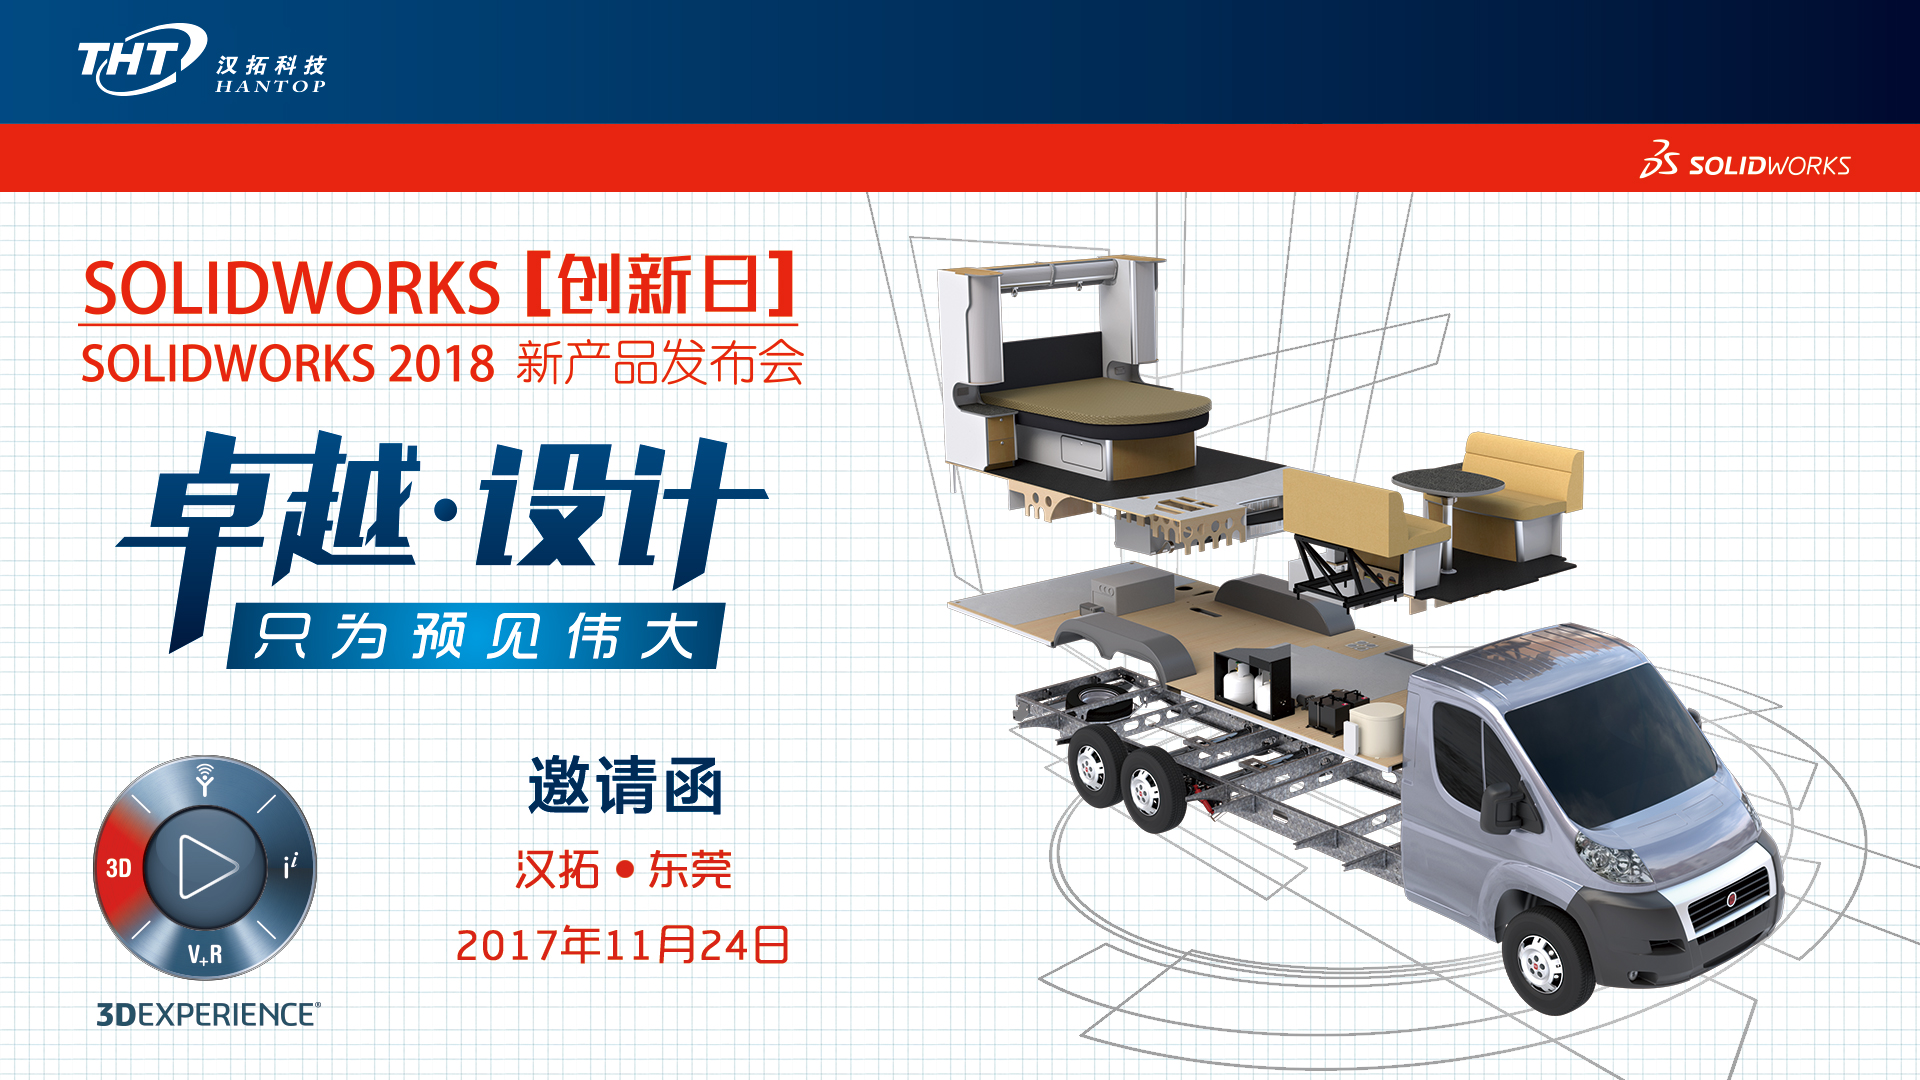 SOLIDWORKS2018新品功能体验 -- 东莞